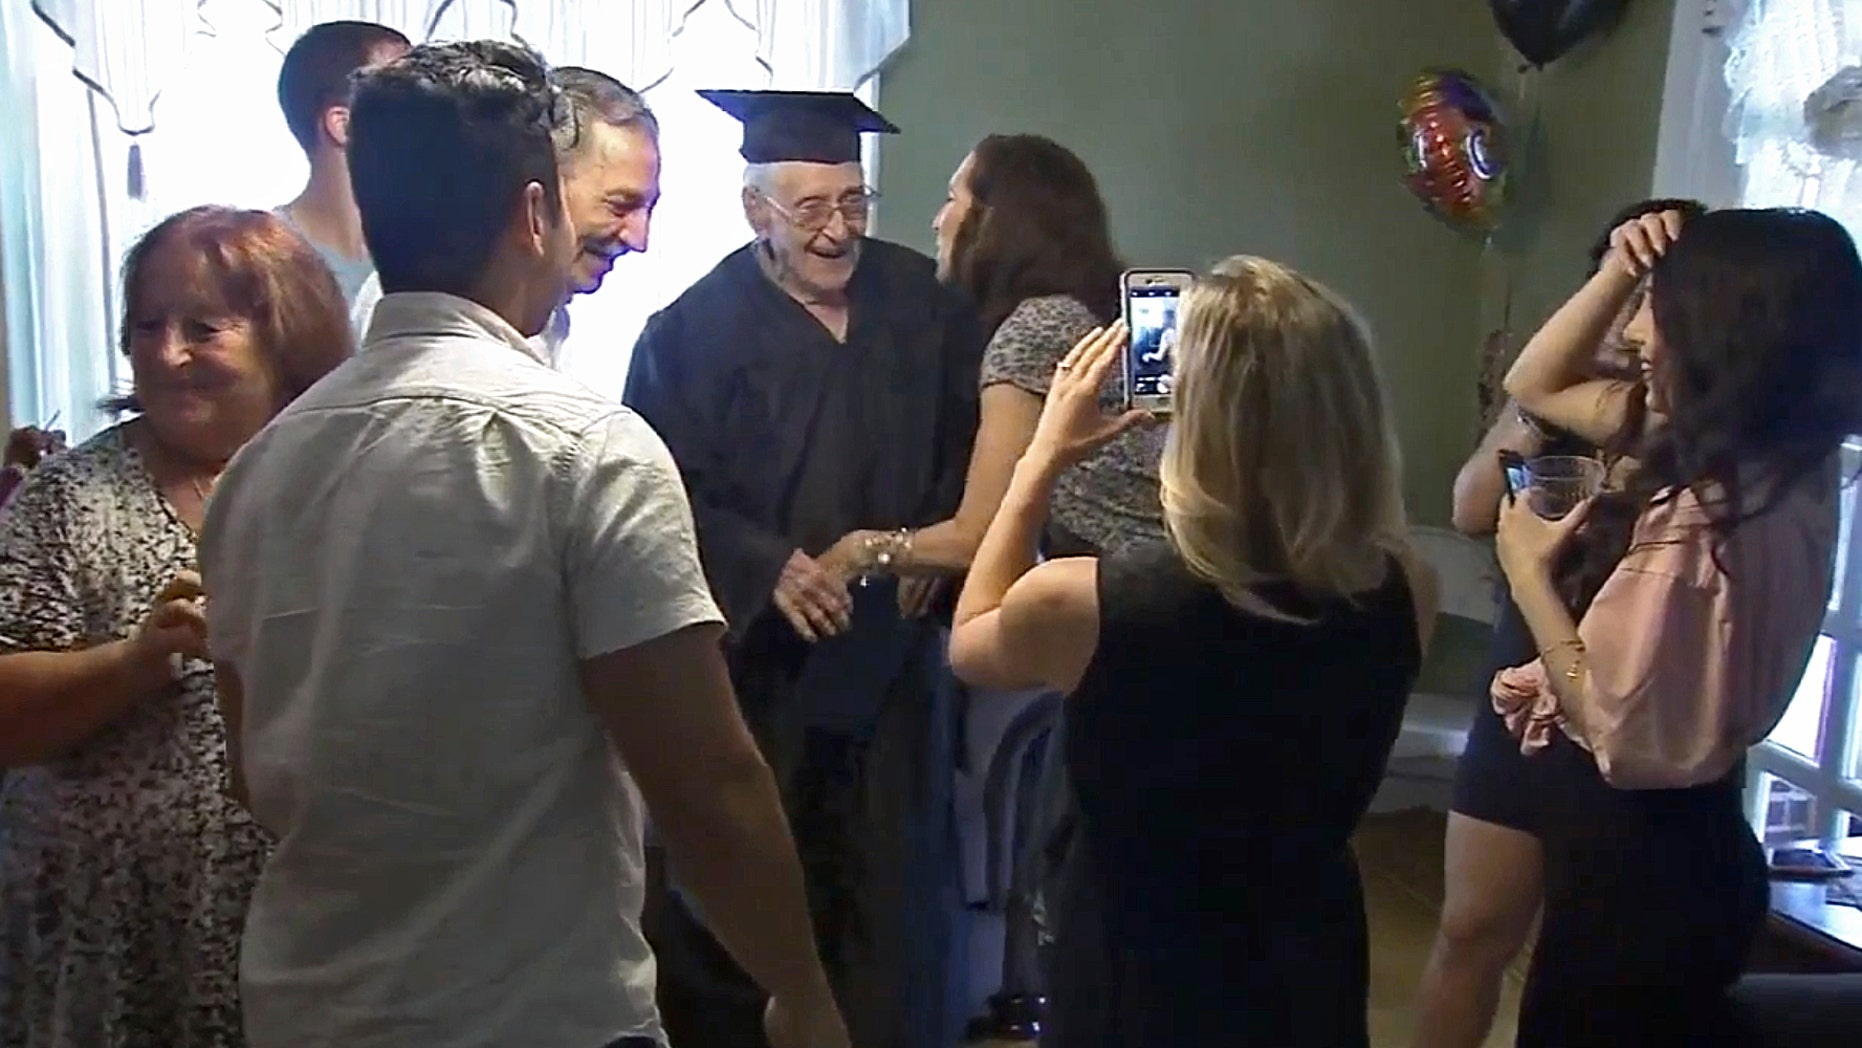 Charles Leuzzi, center, a 97-year-old World War II veteran, is congratulated by friends and relatives after receiving an honorary high school diploma.